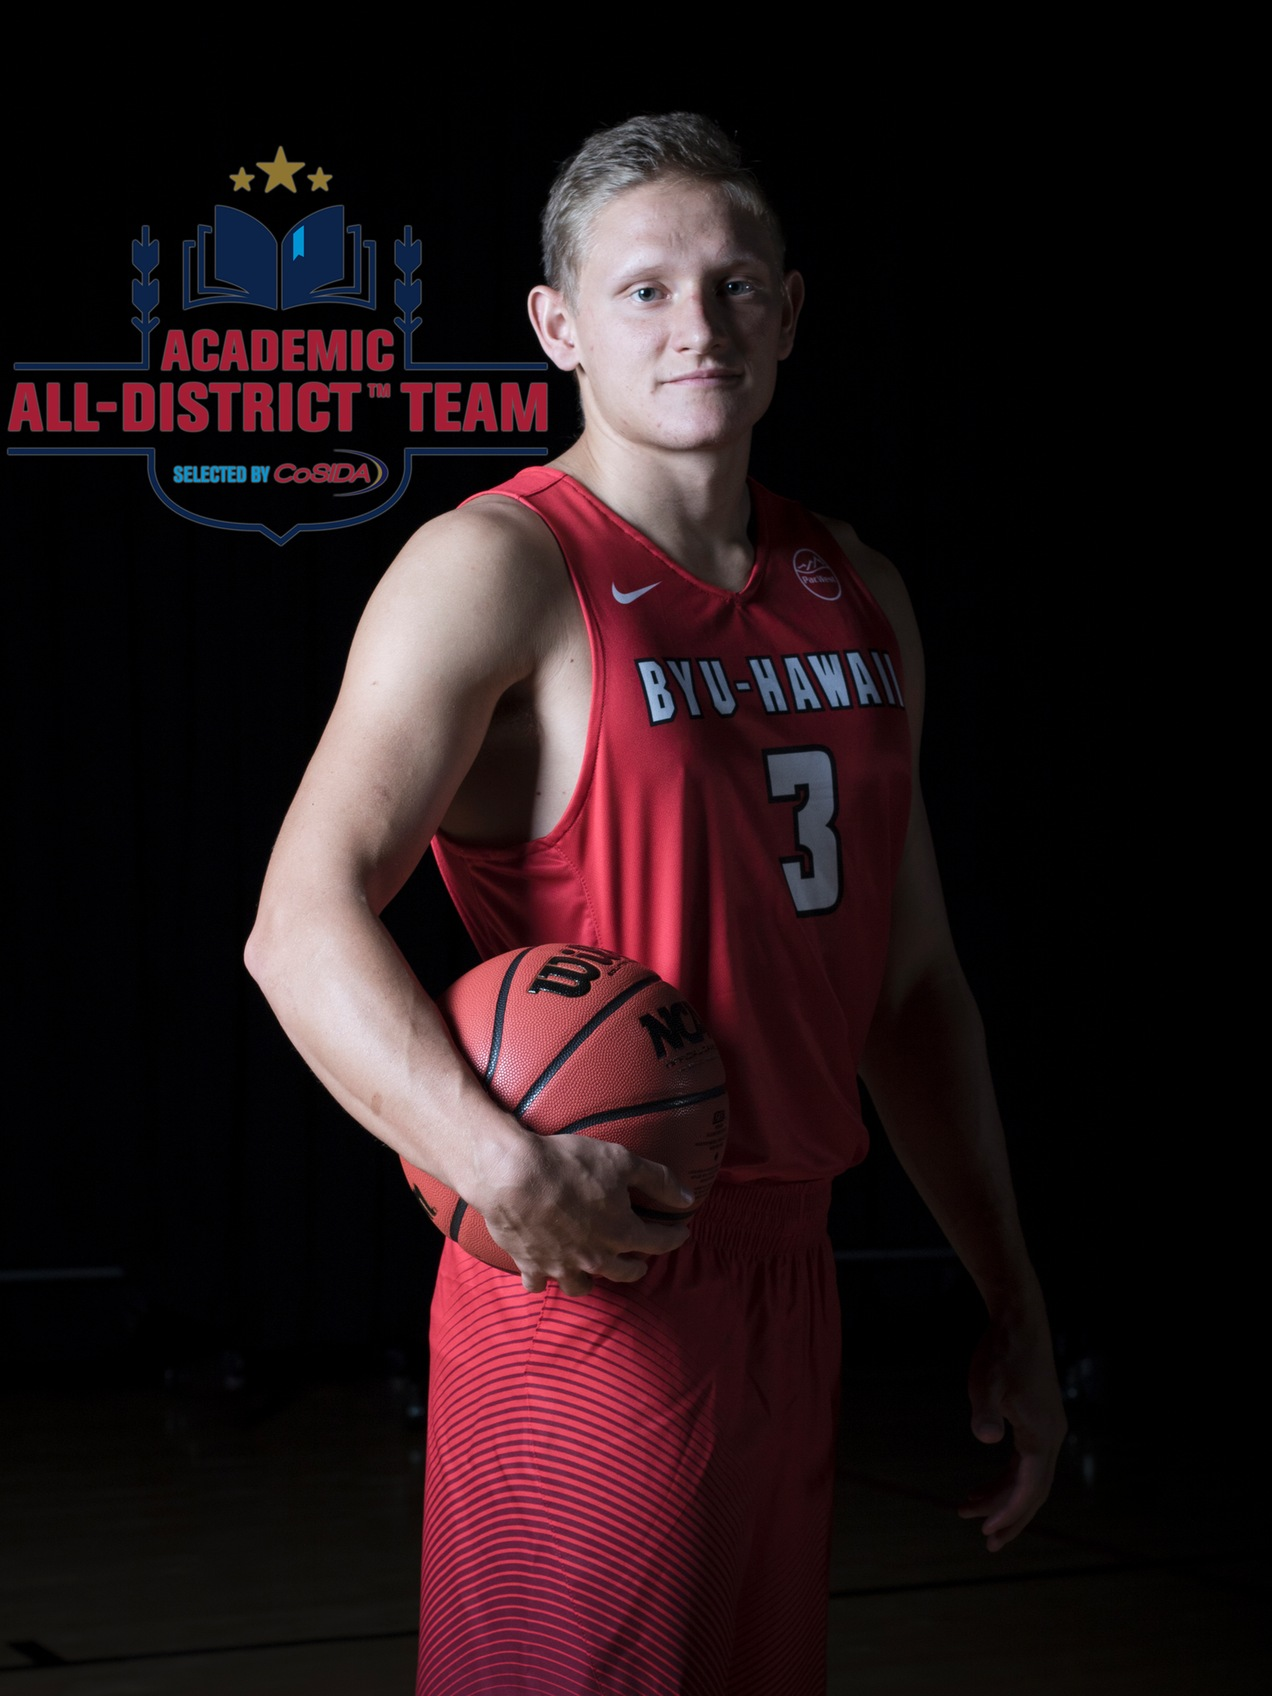 Nelson named academic all-district